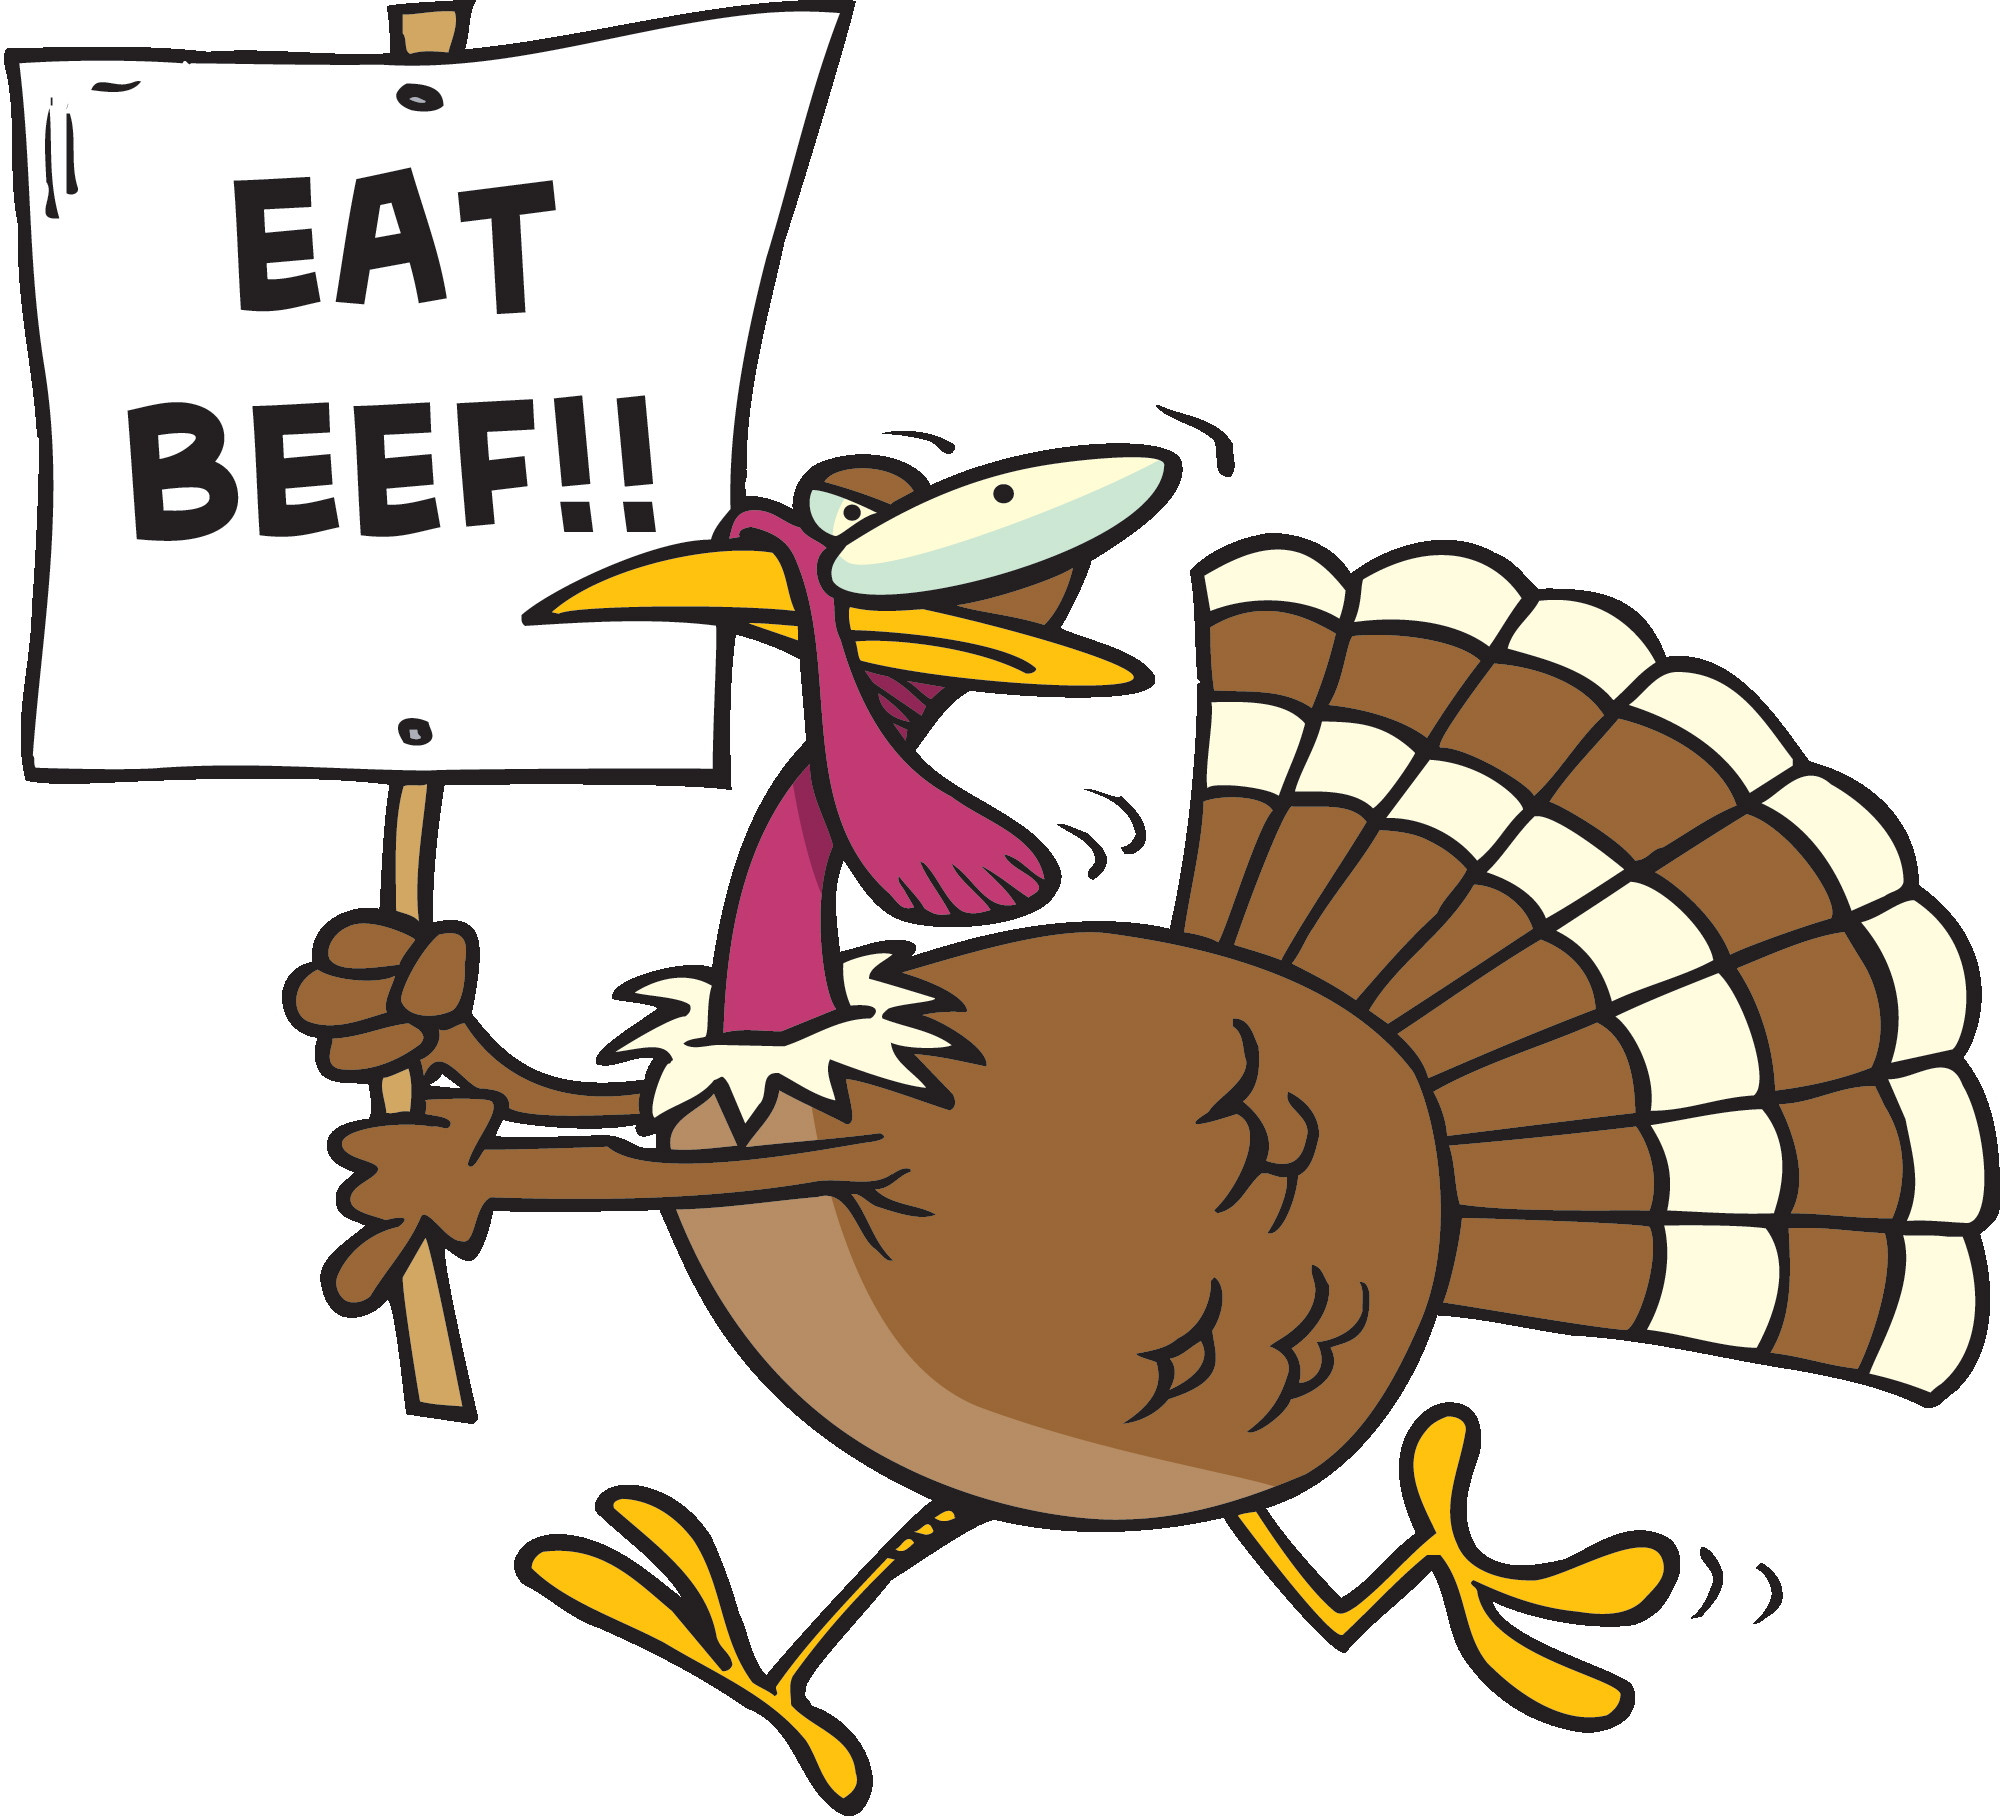 Thanksgiving Turkey Pictures Free  Eat Beef Funny Turkey Clipart Image